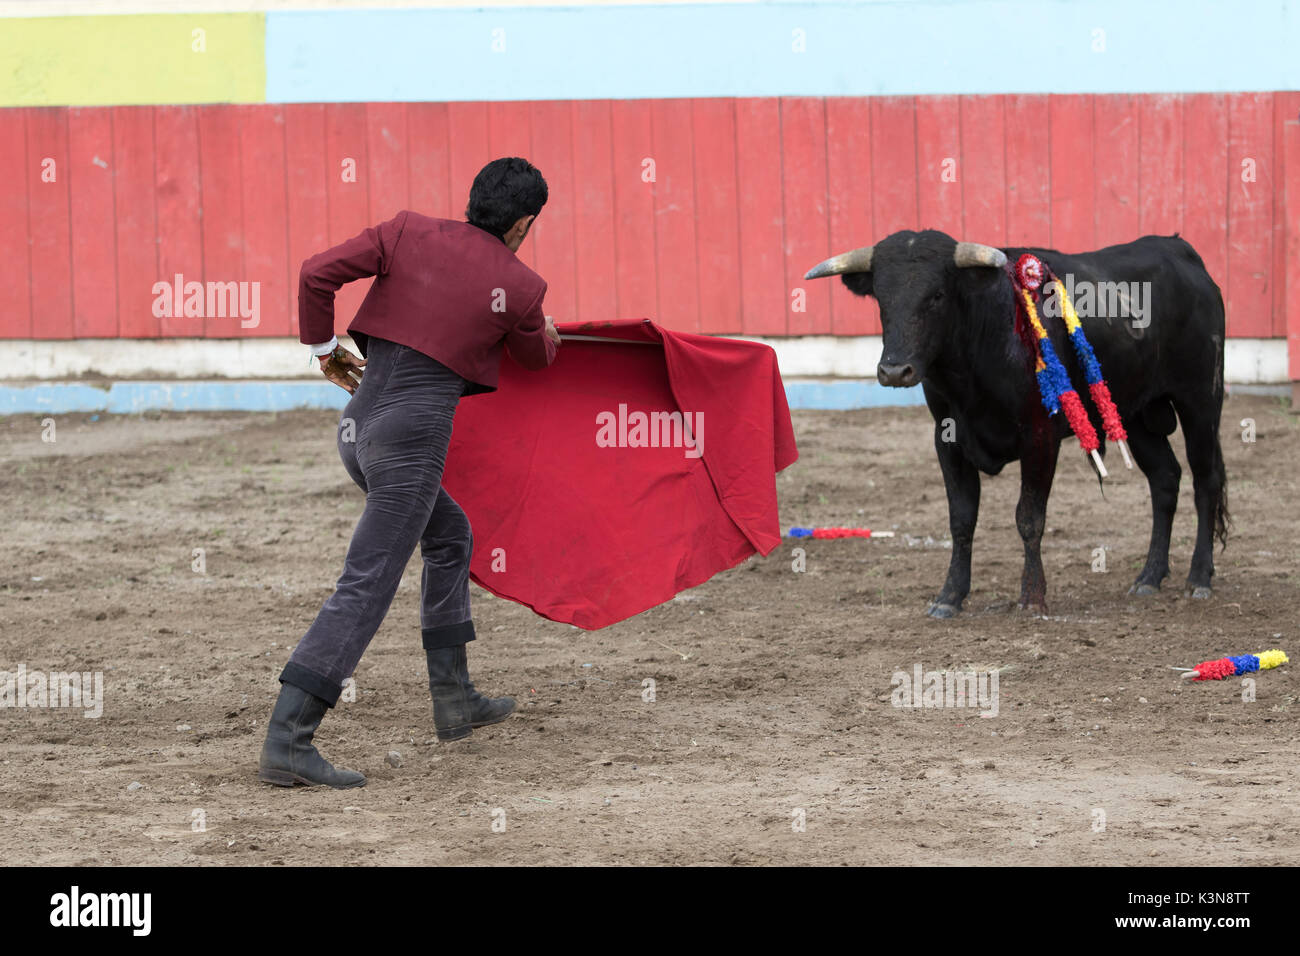 June 18, 2017 Pujili, Ecuador: bullfighter holds up a red cape in front of the bull in the arena Stock Photo